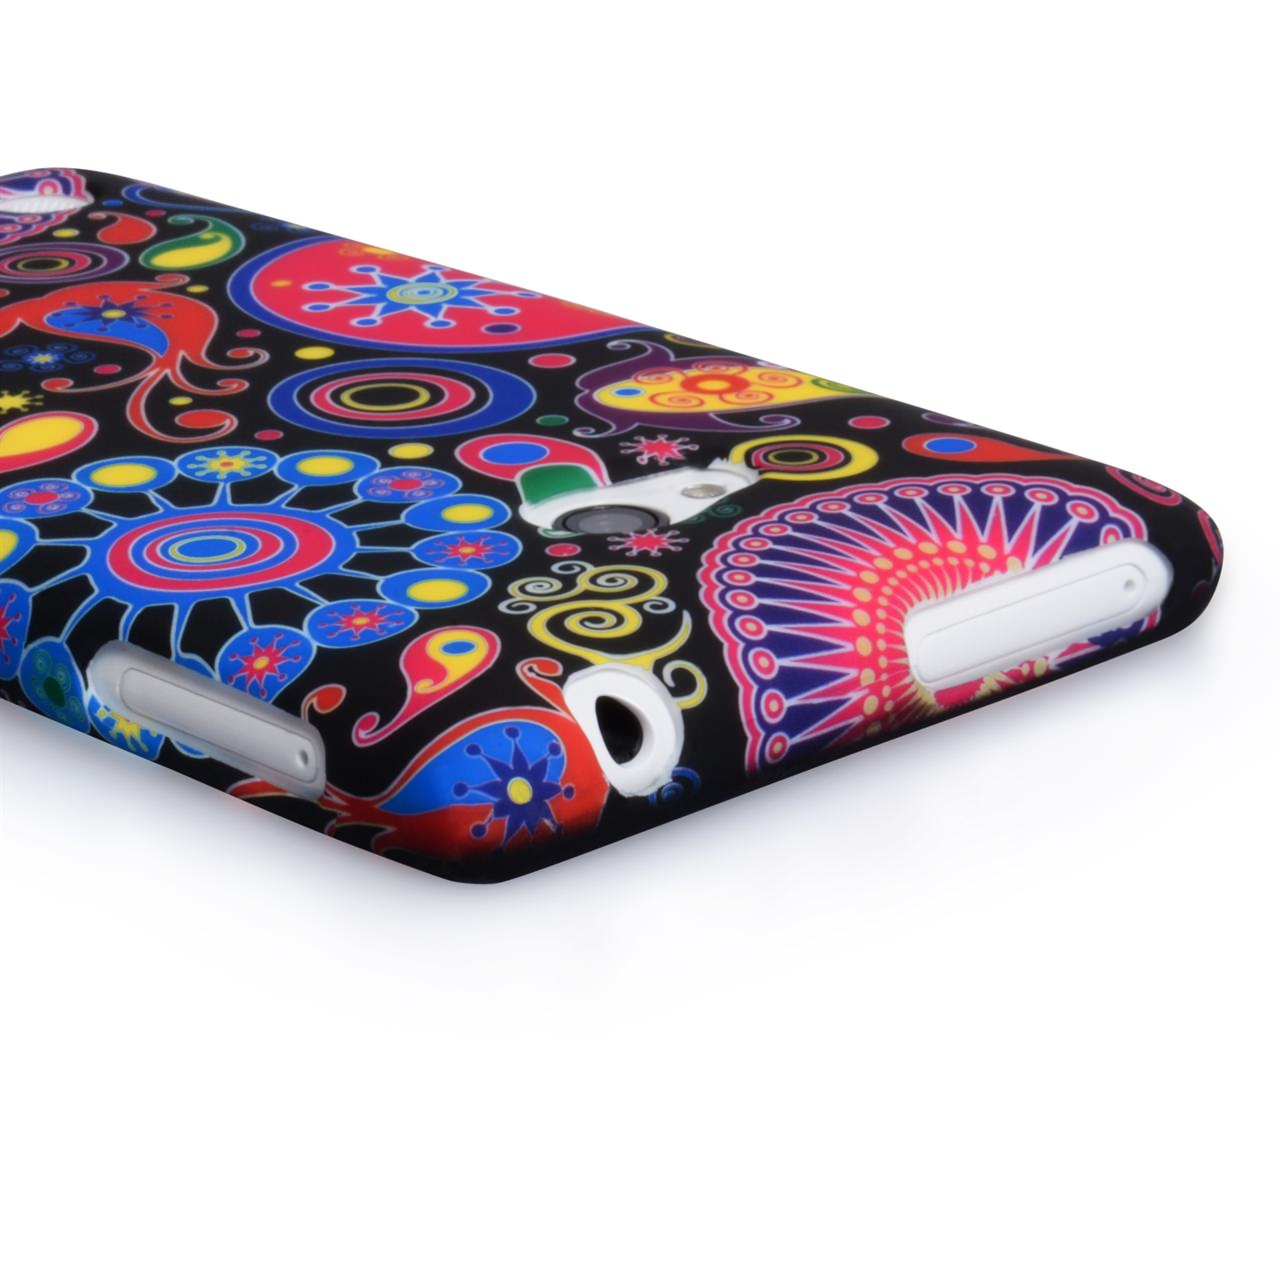 YouSave Accessories Nokia Lumia 720 Jellyfish Silicone Gel Case